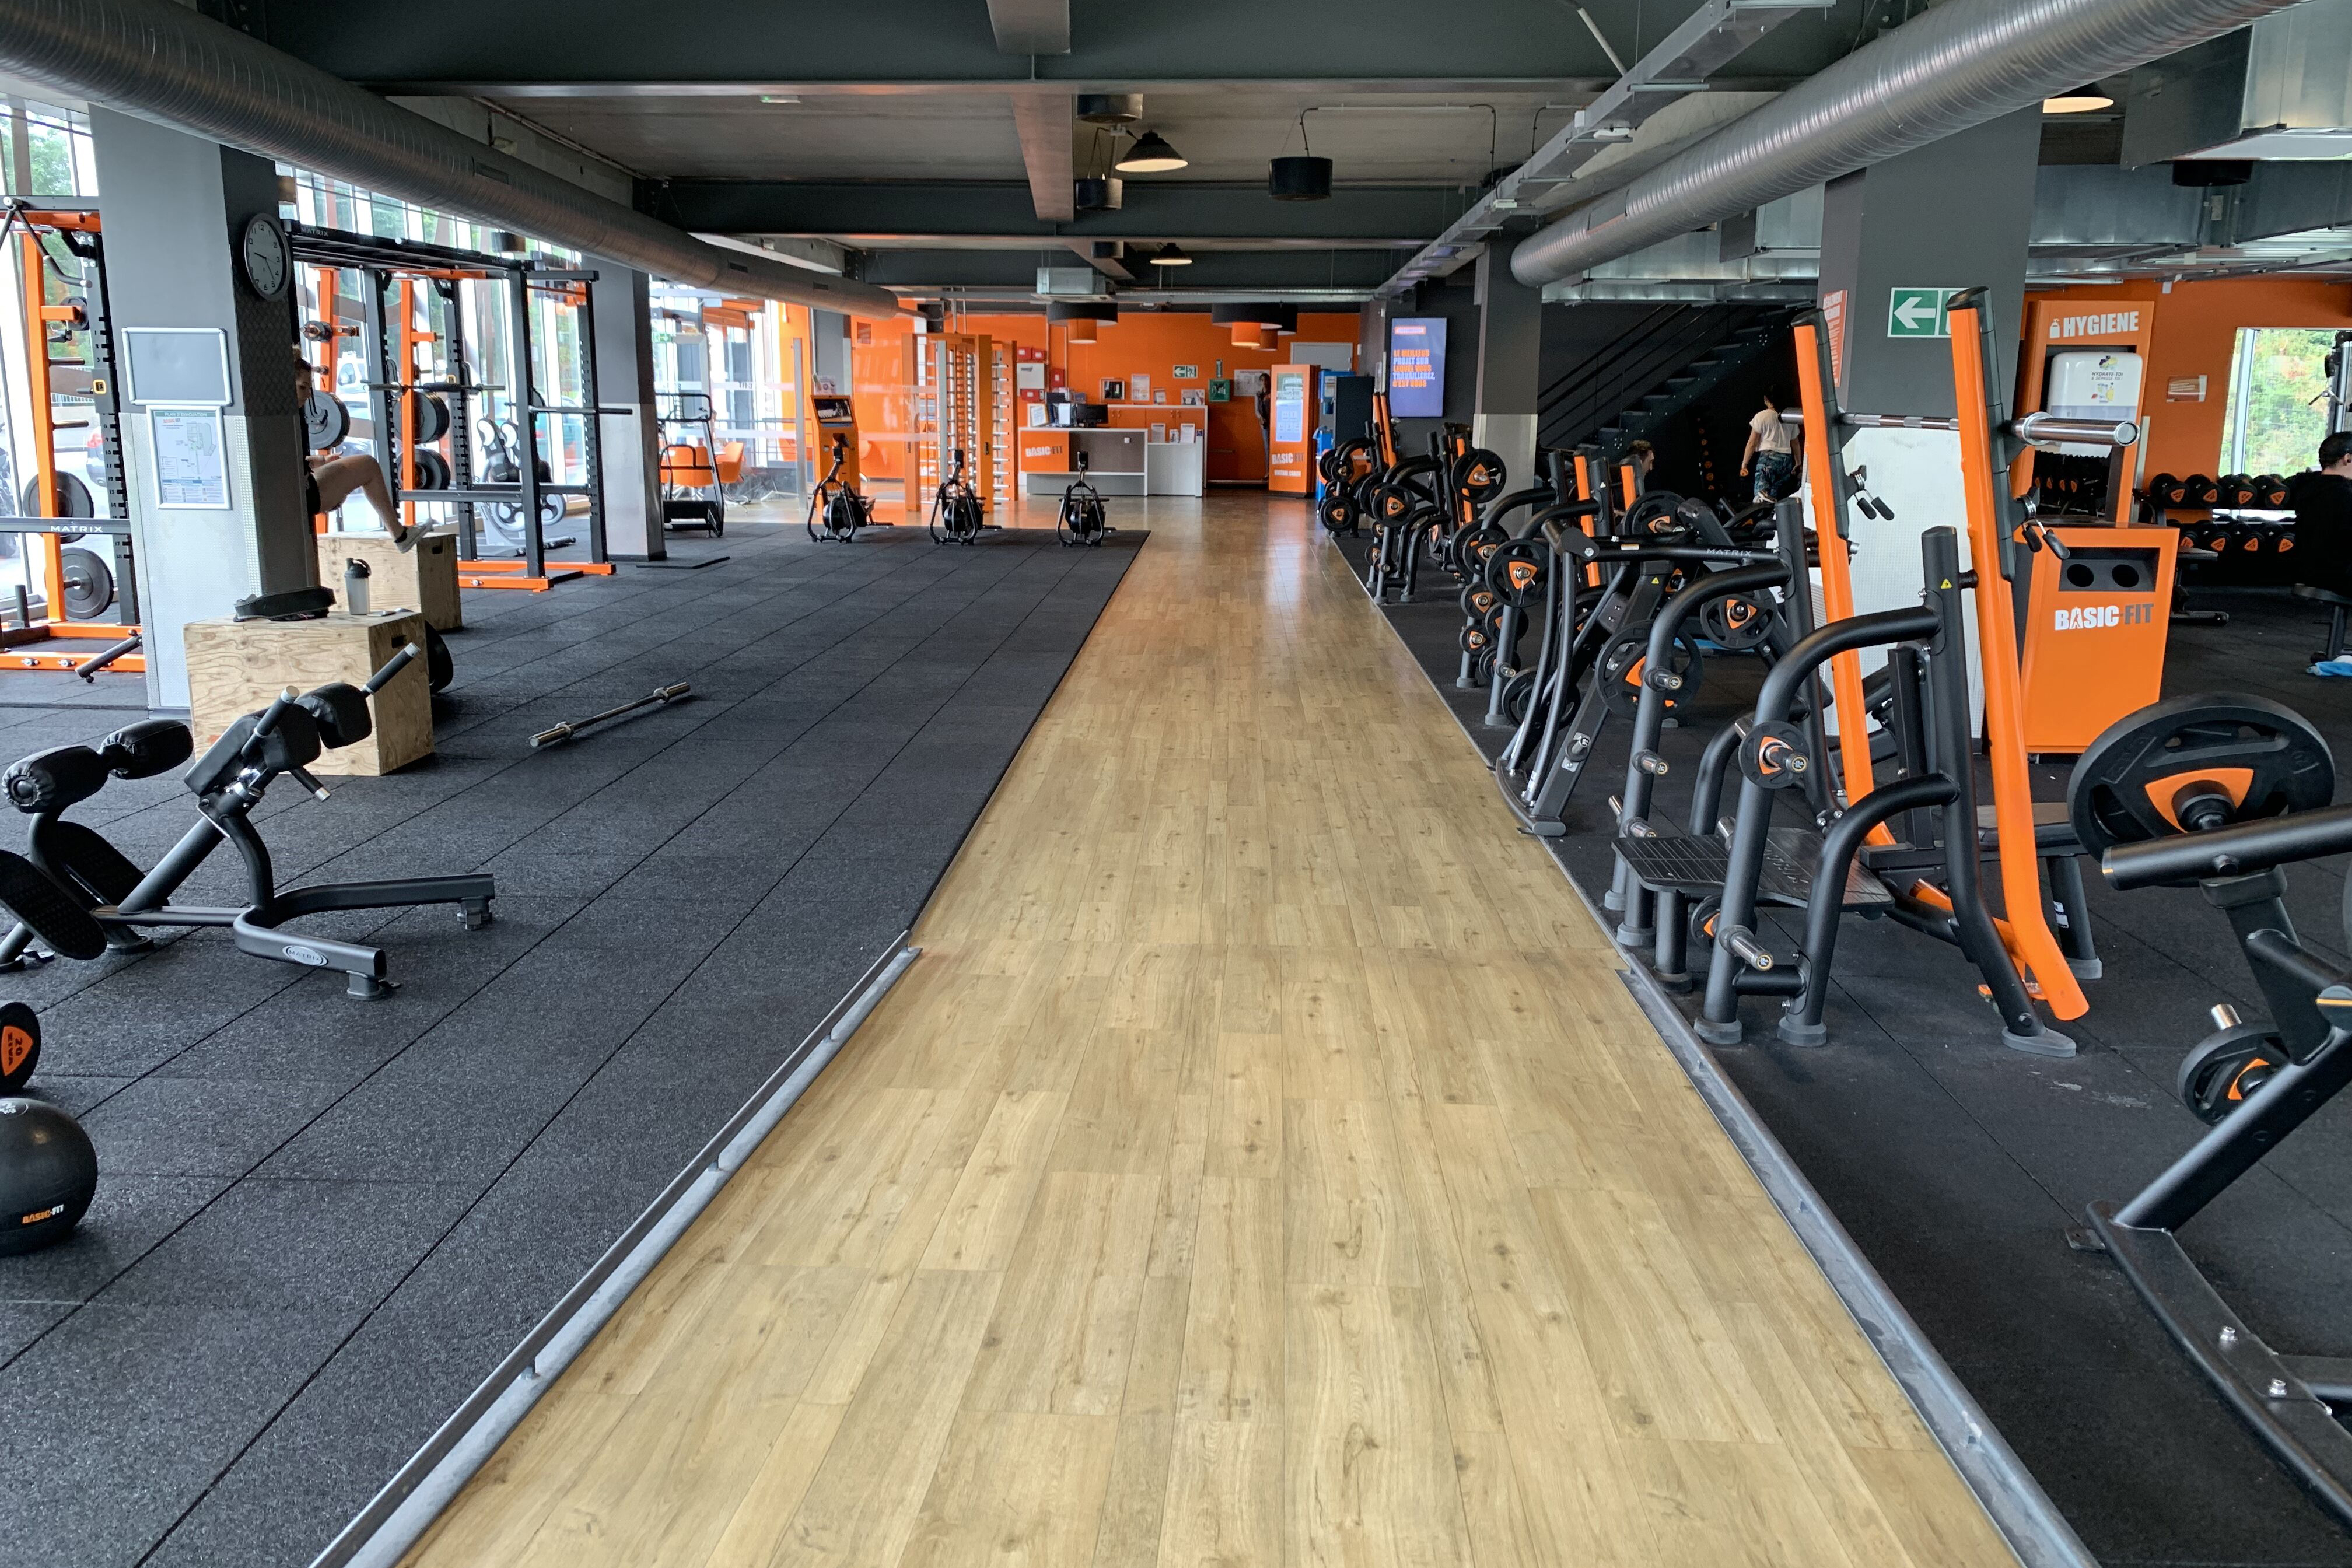 Basic Fit Gym Basic Fit Nantes Rue Anatole De Monzie